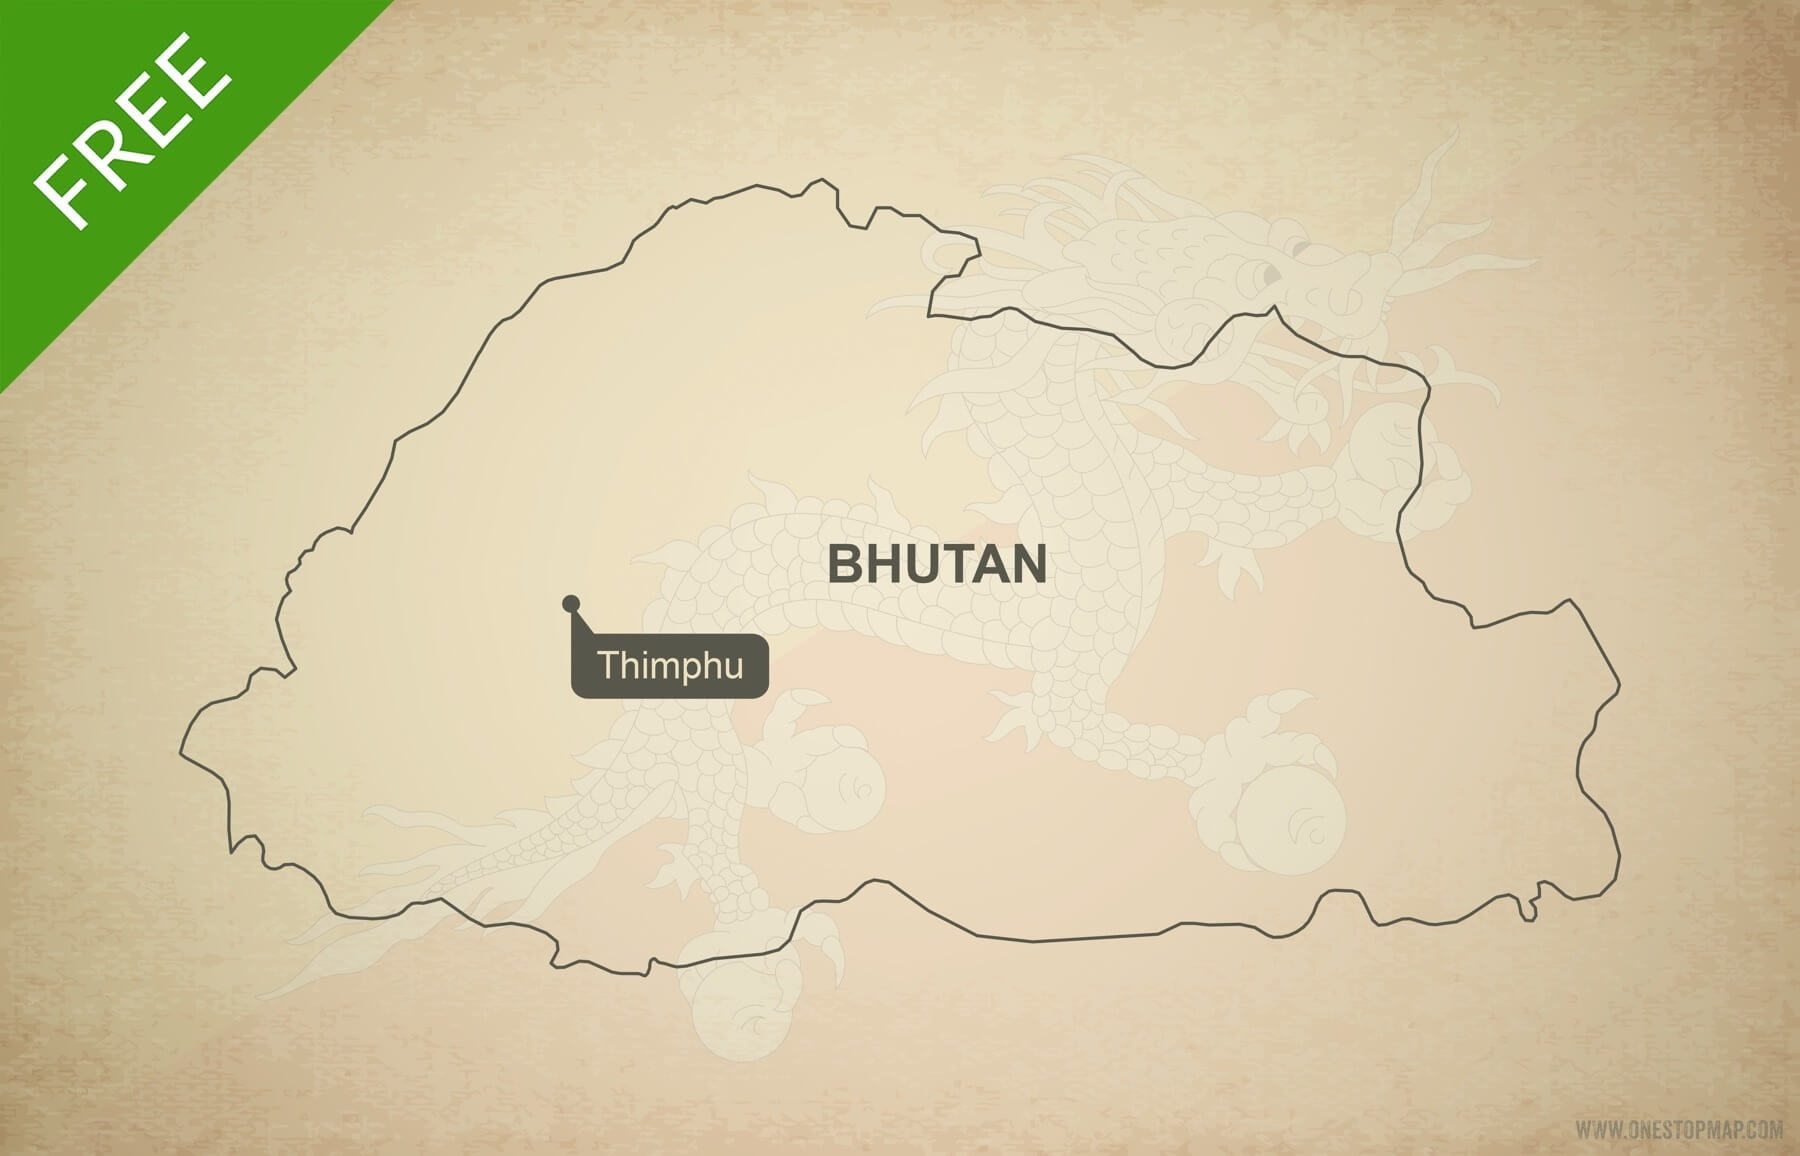 Free Vector Map Of Bhutan Outline One Stop Map - Map of bhutan